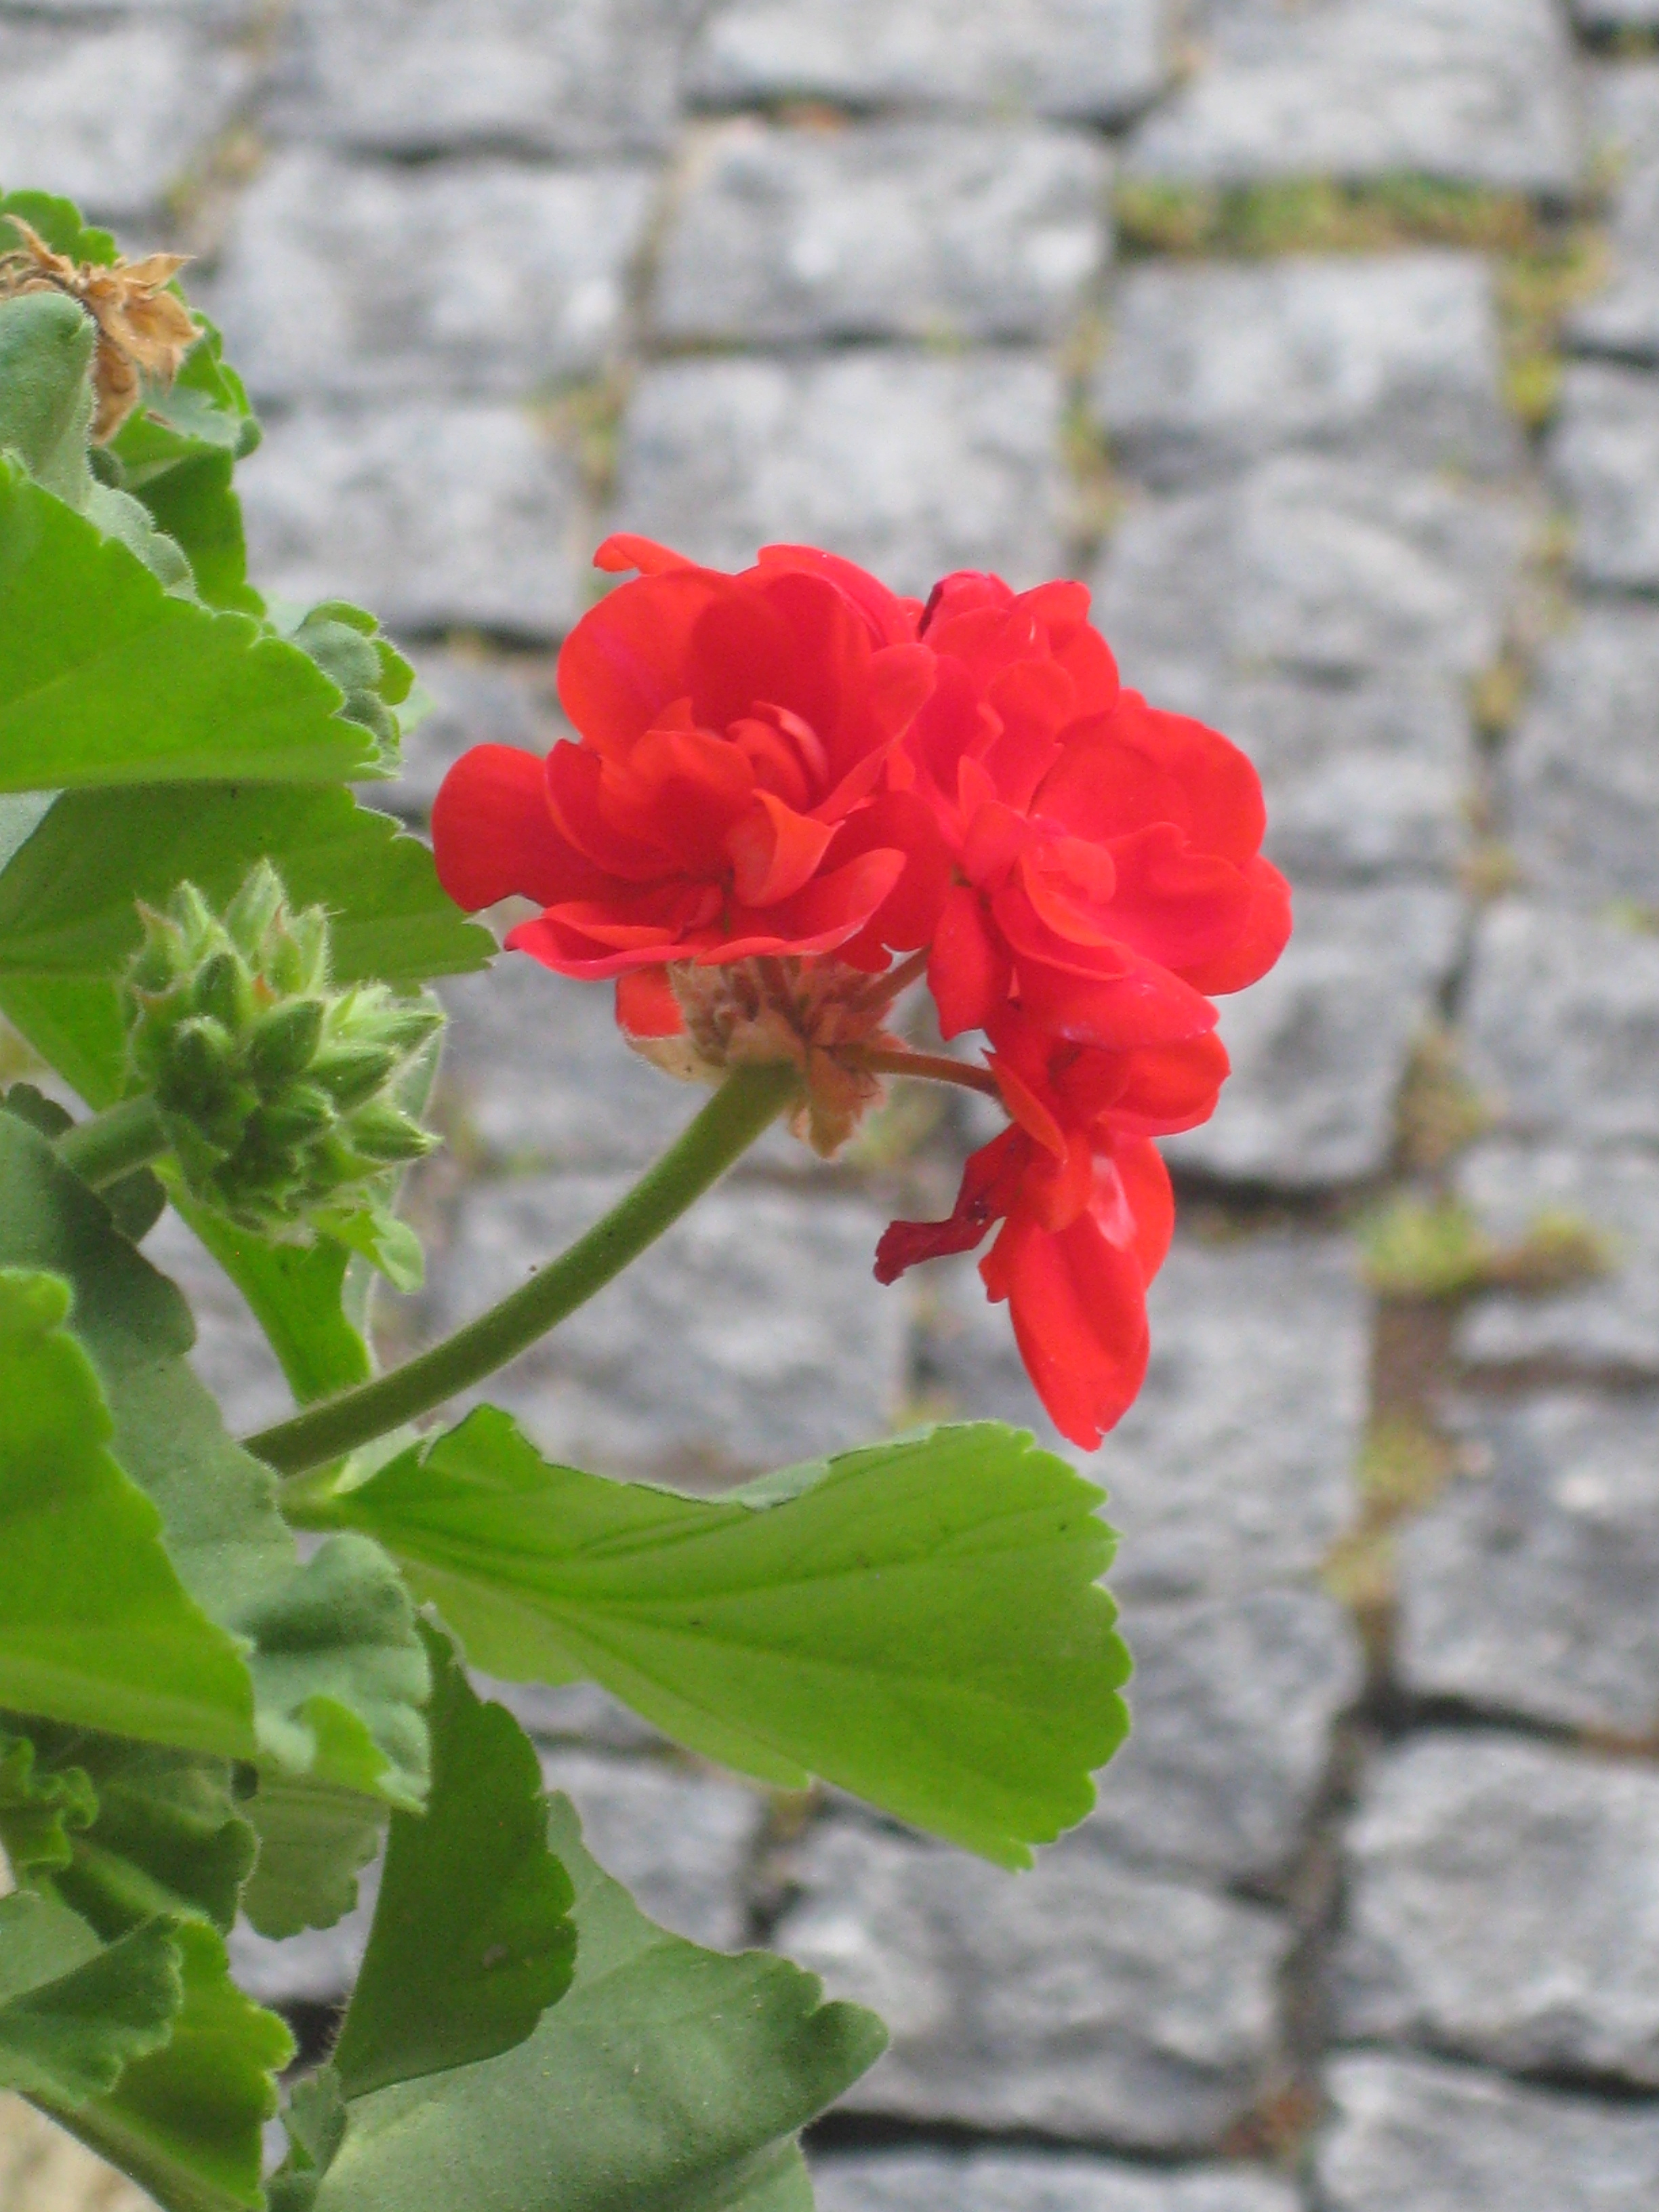 Backbone to our gardens - the red geranium, blooming even in the late winter.